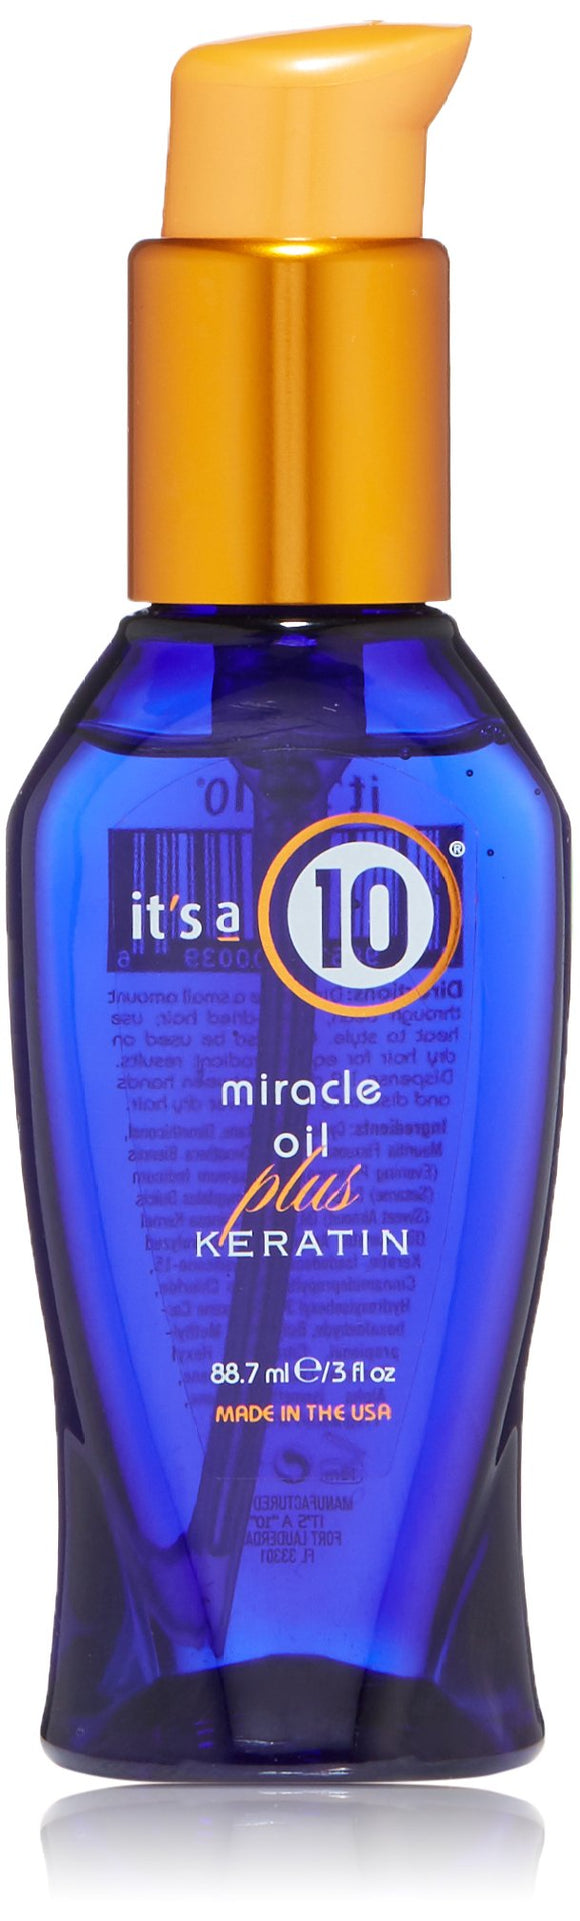 Miracle Oil Plus Keratin by Its A 10 for Unisex - 3 oz Oil